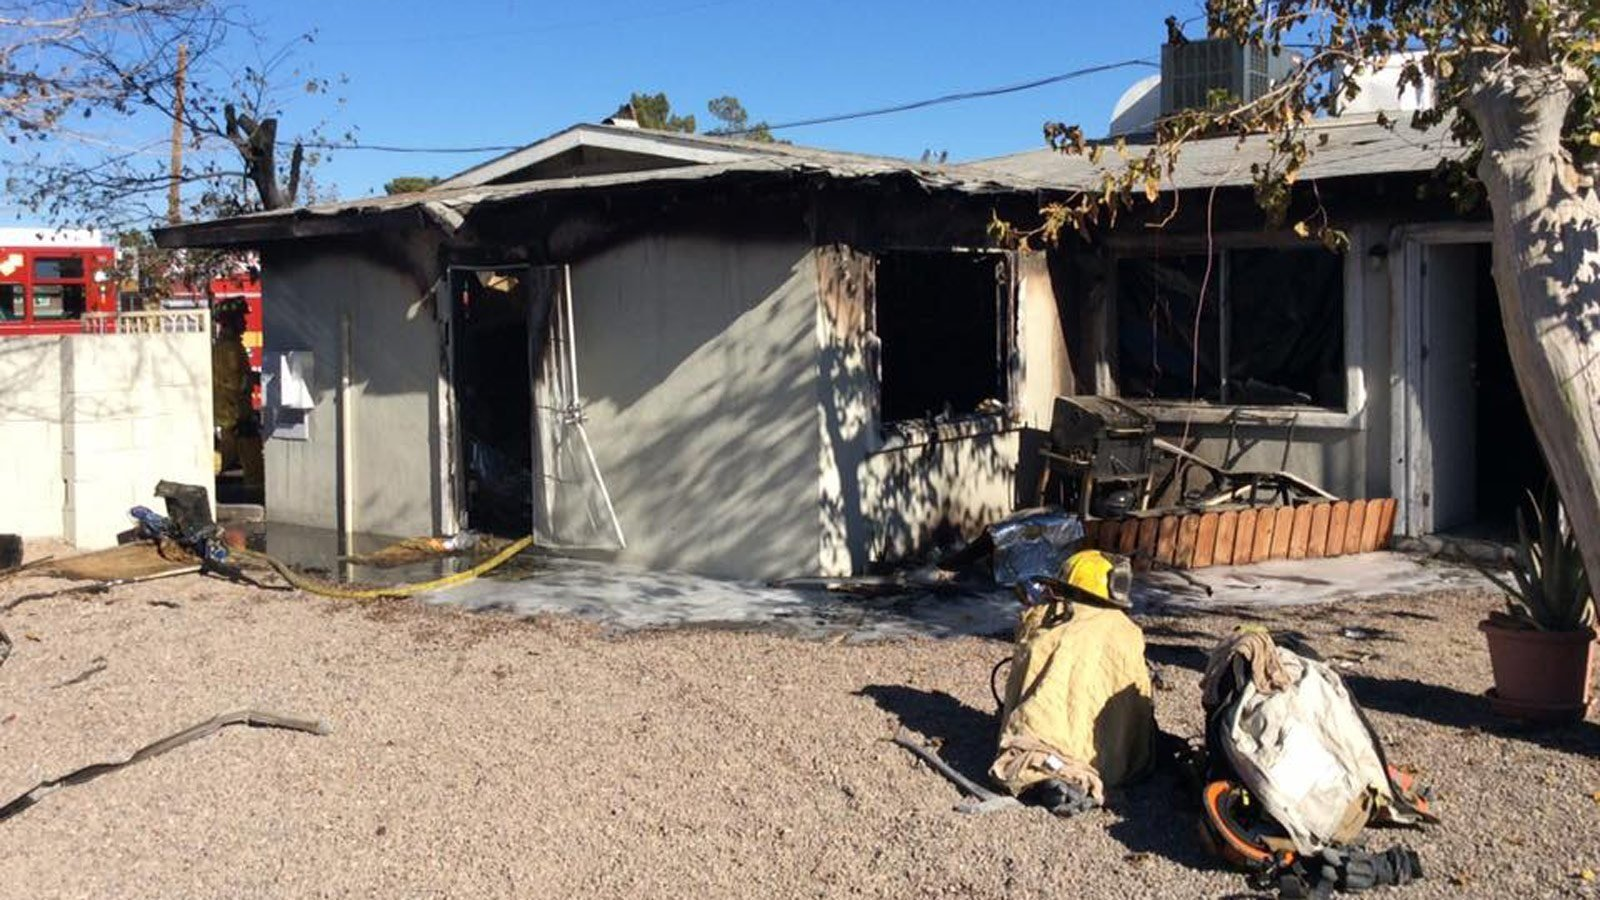 A homeless man saved two children from their burning home, officials say.